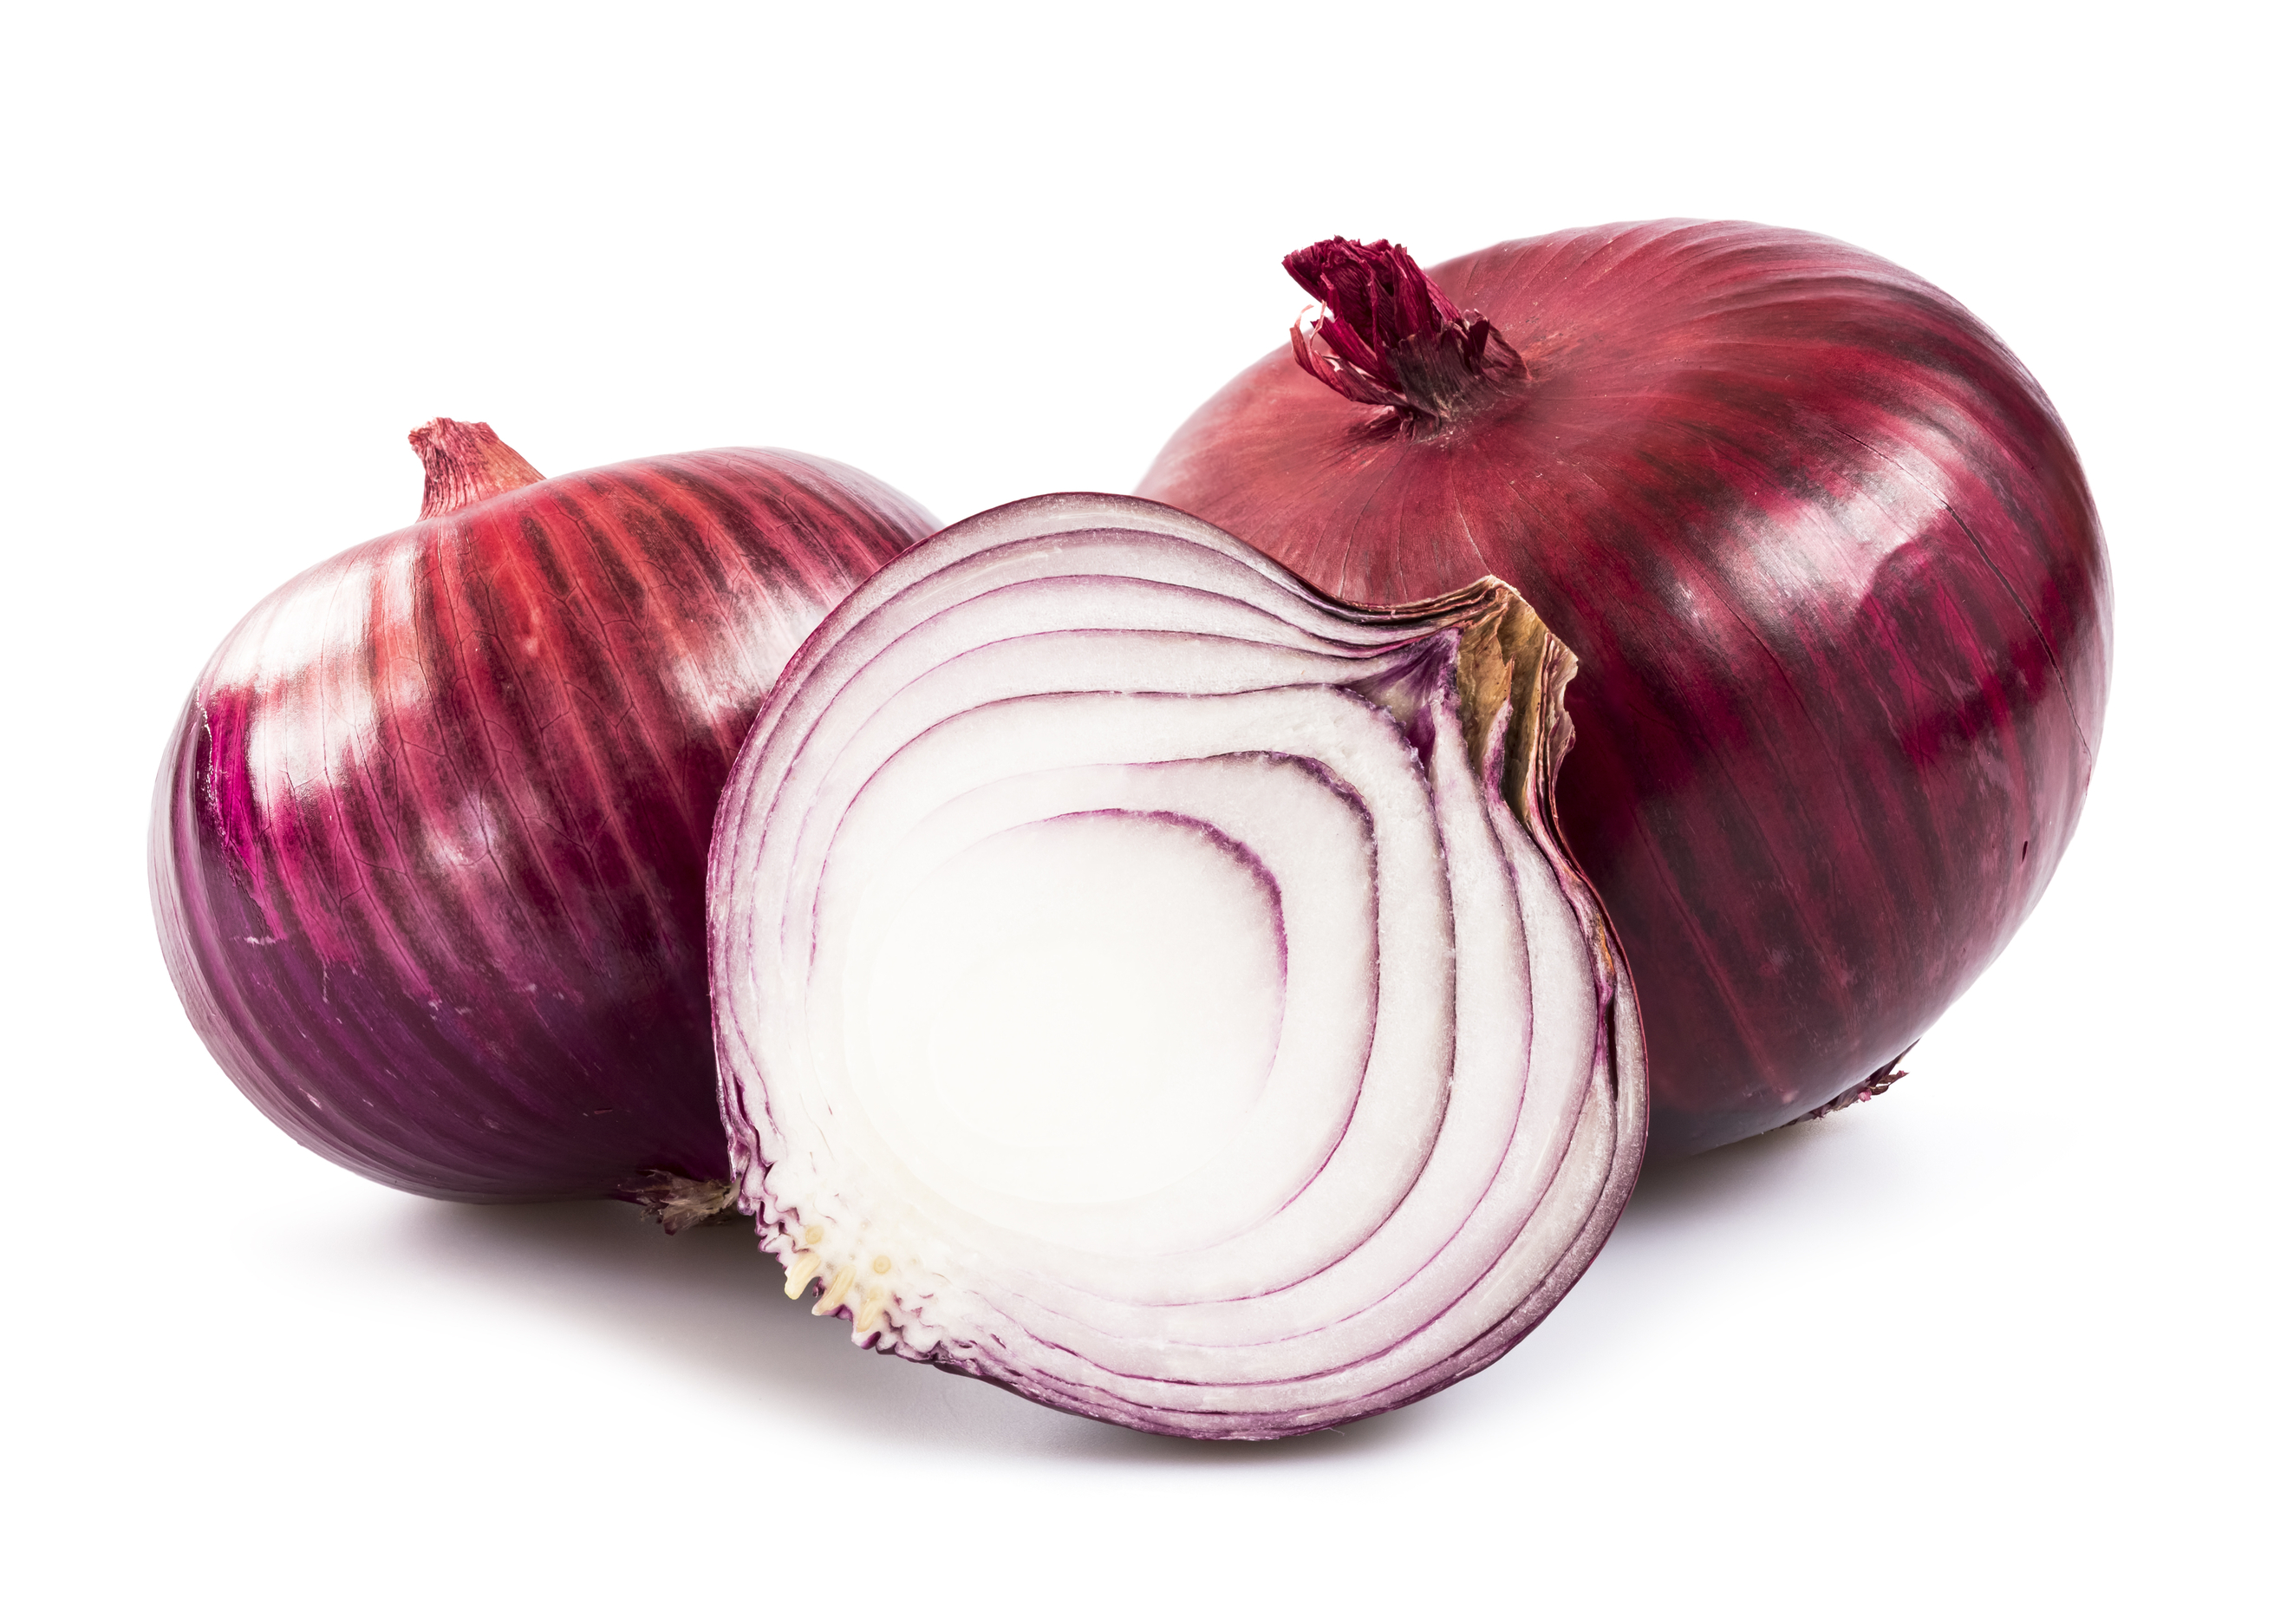 Onion Remedy for Prostate Problems